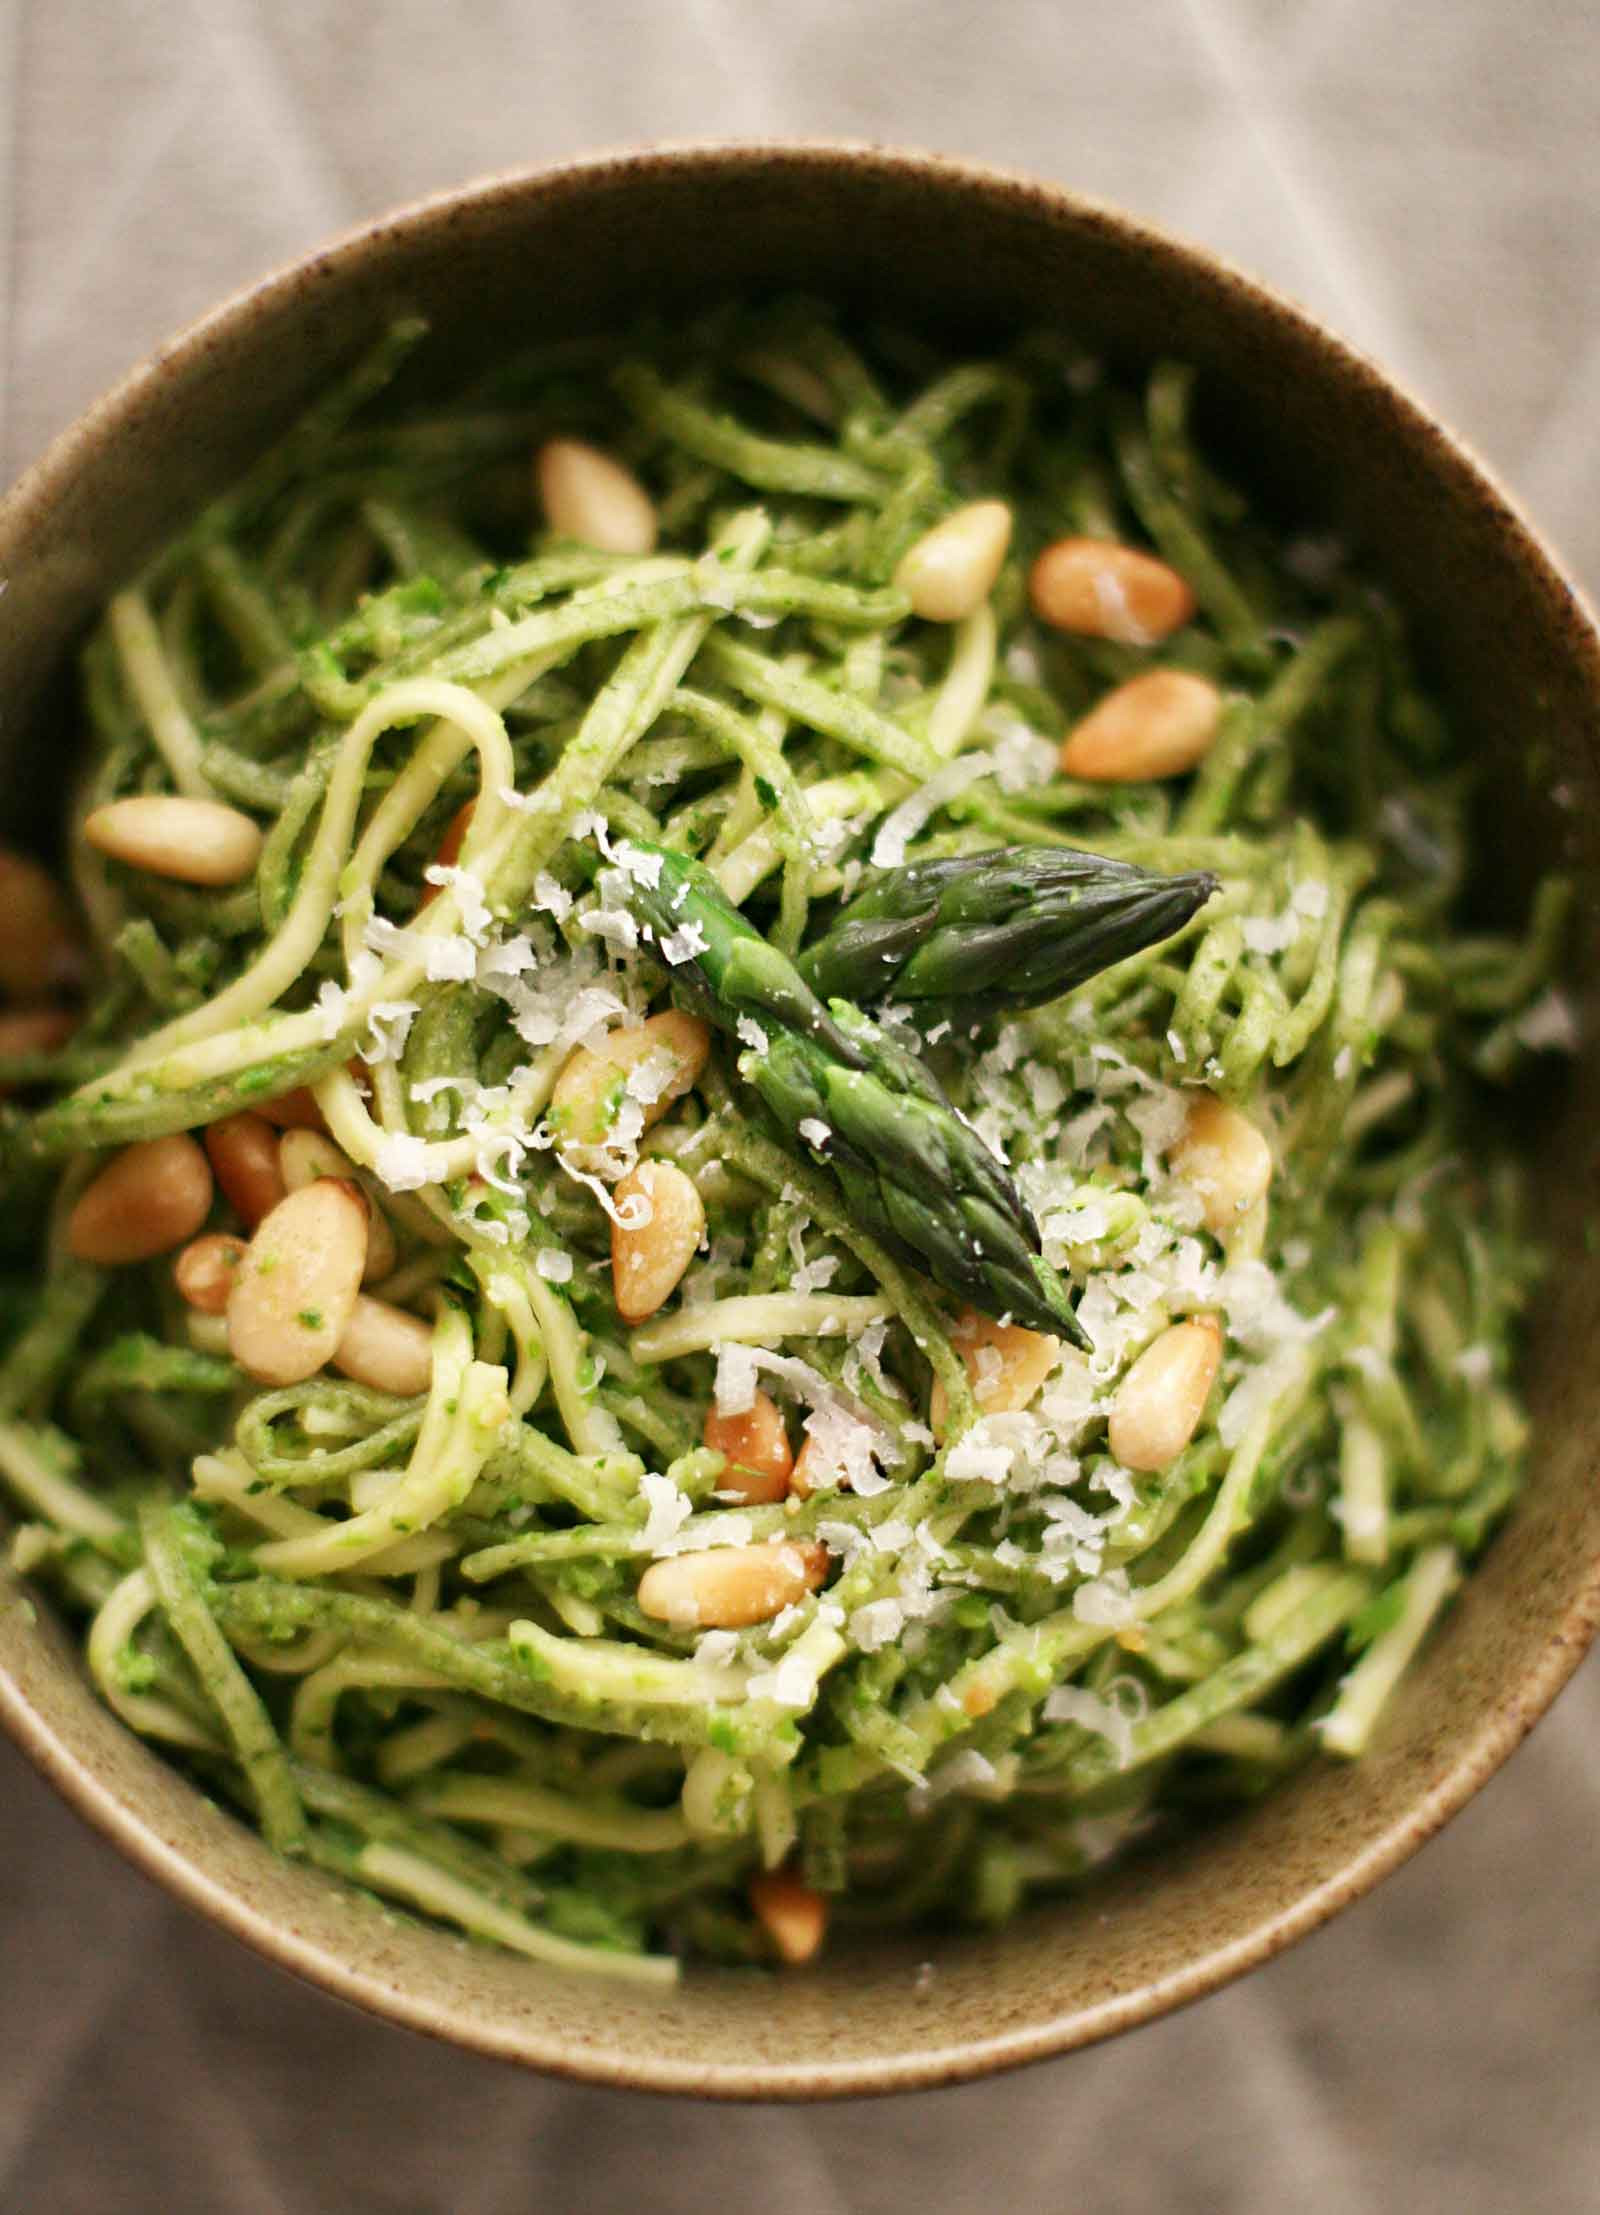 Pesto Sauce Pasta  Asparagus Pesto with Pasta Recipe